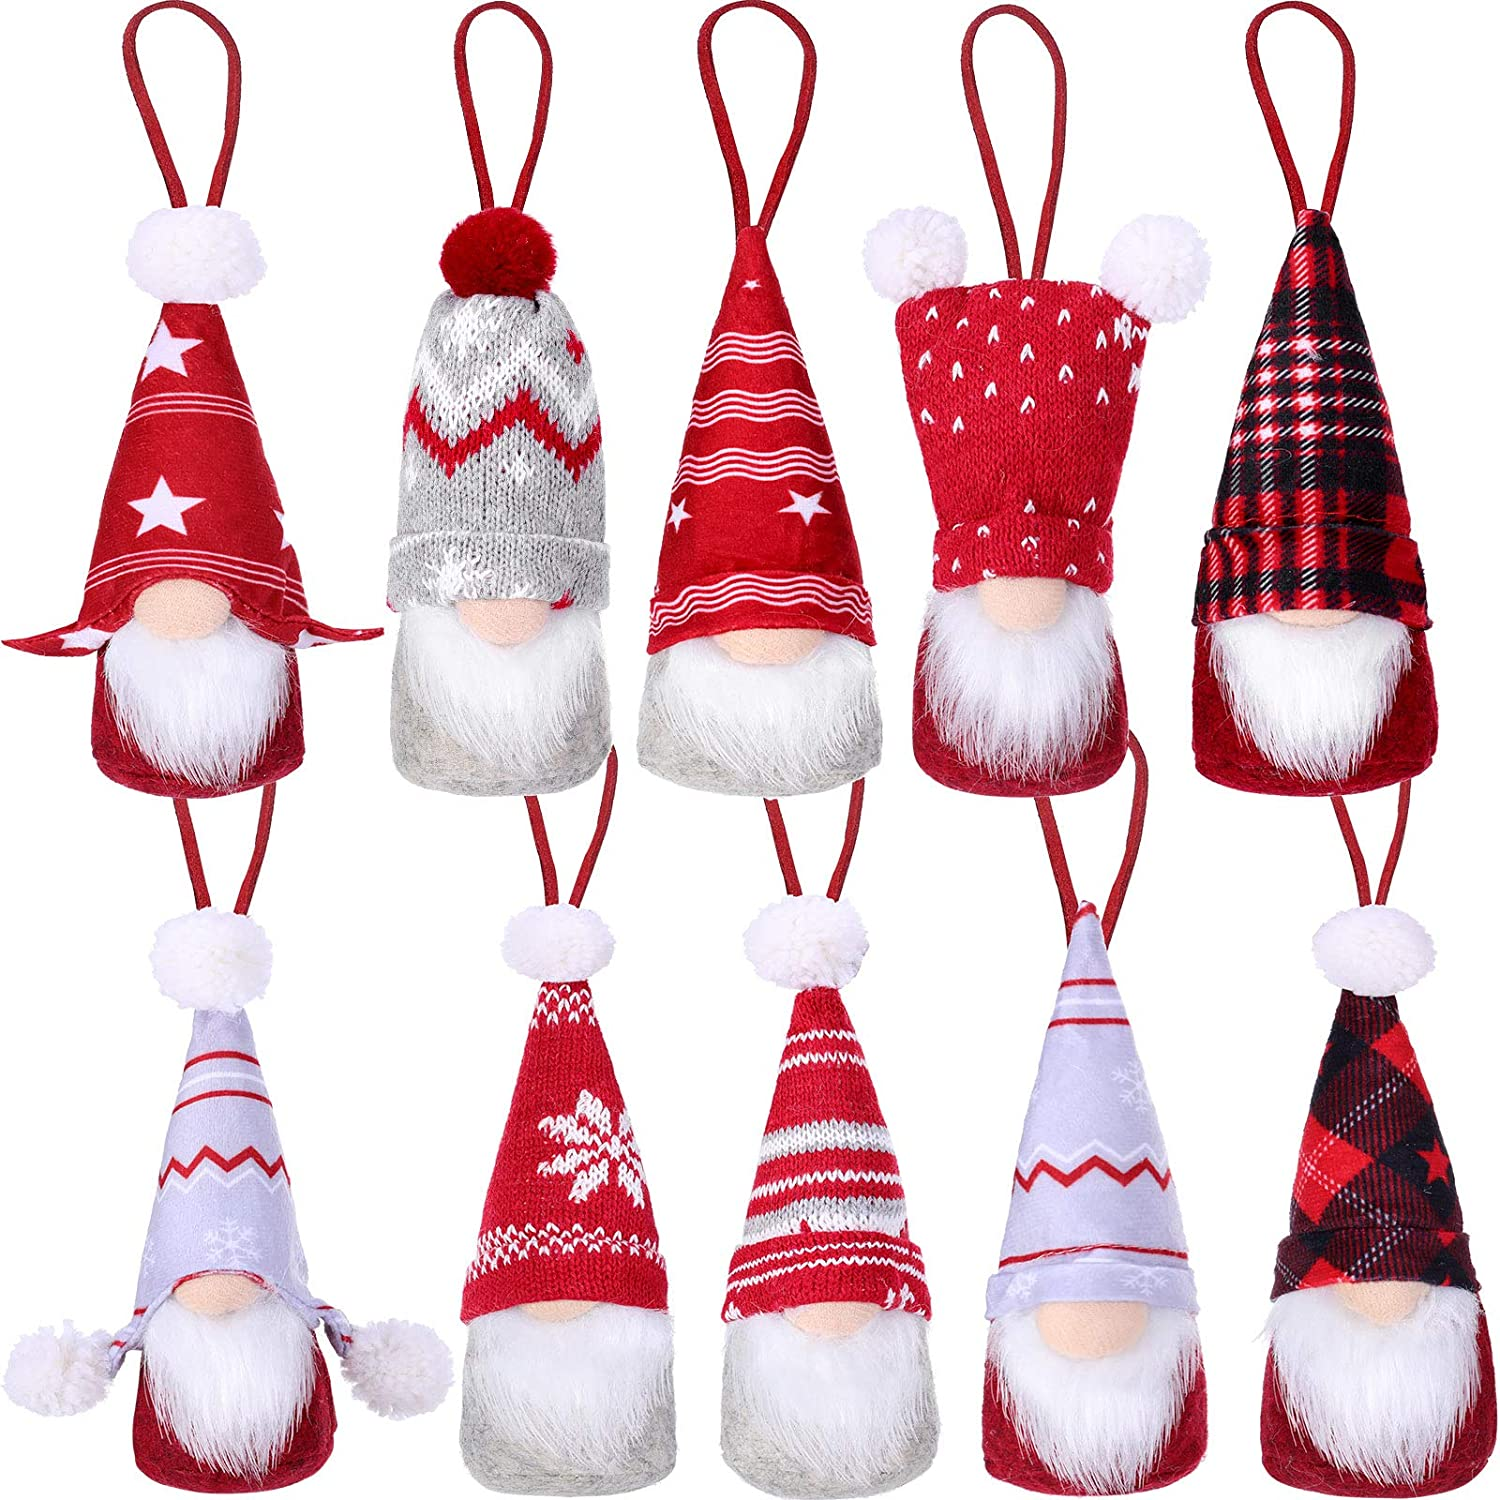 WILLBOND 10 Pieces Christmas Tree Gnome Ornaments Handmade Christmas Scandinavian Plush Decorations Swedish Tomte Gnomes Hanging Decorations Gnome Ornaments Set for Christmas Tree Hanging Home Decor